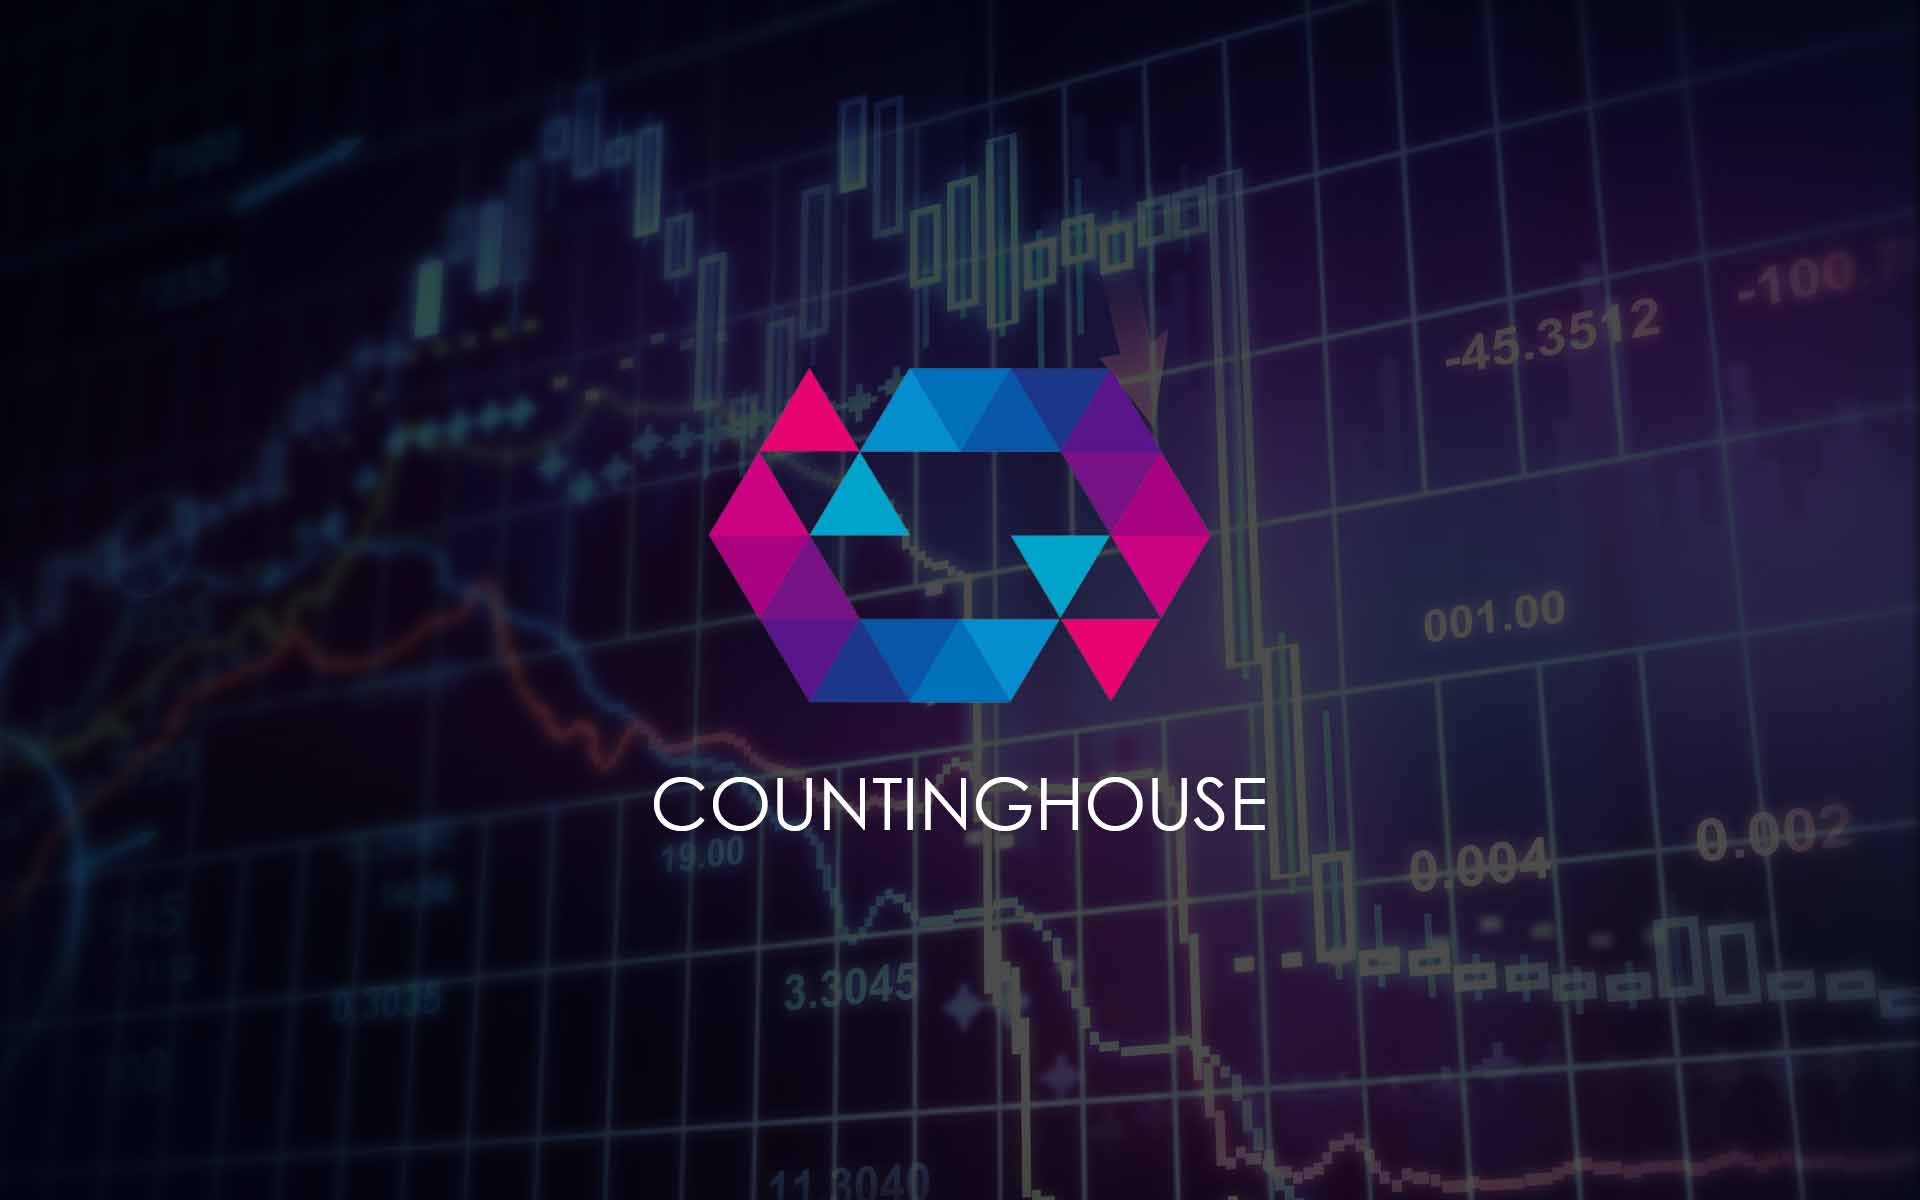 CountingHouse Hedge Fund Set To Launch ICO Based On Cryptocurrency Backed Hedge Fund That Uses Algorithm To Create Profits